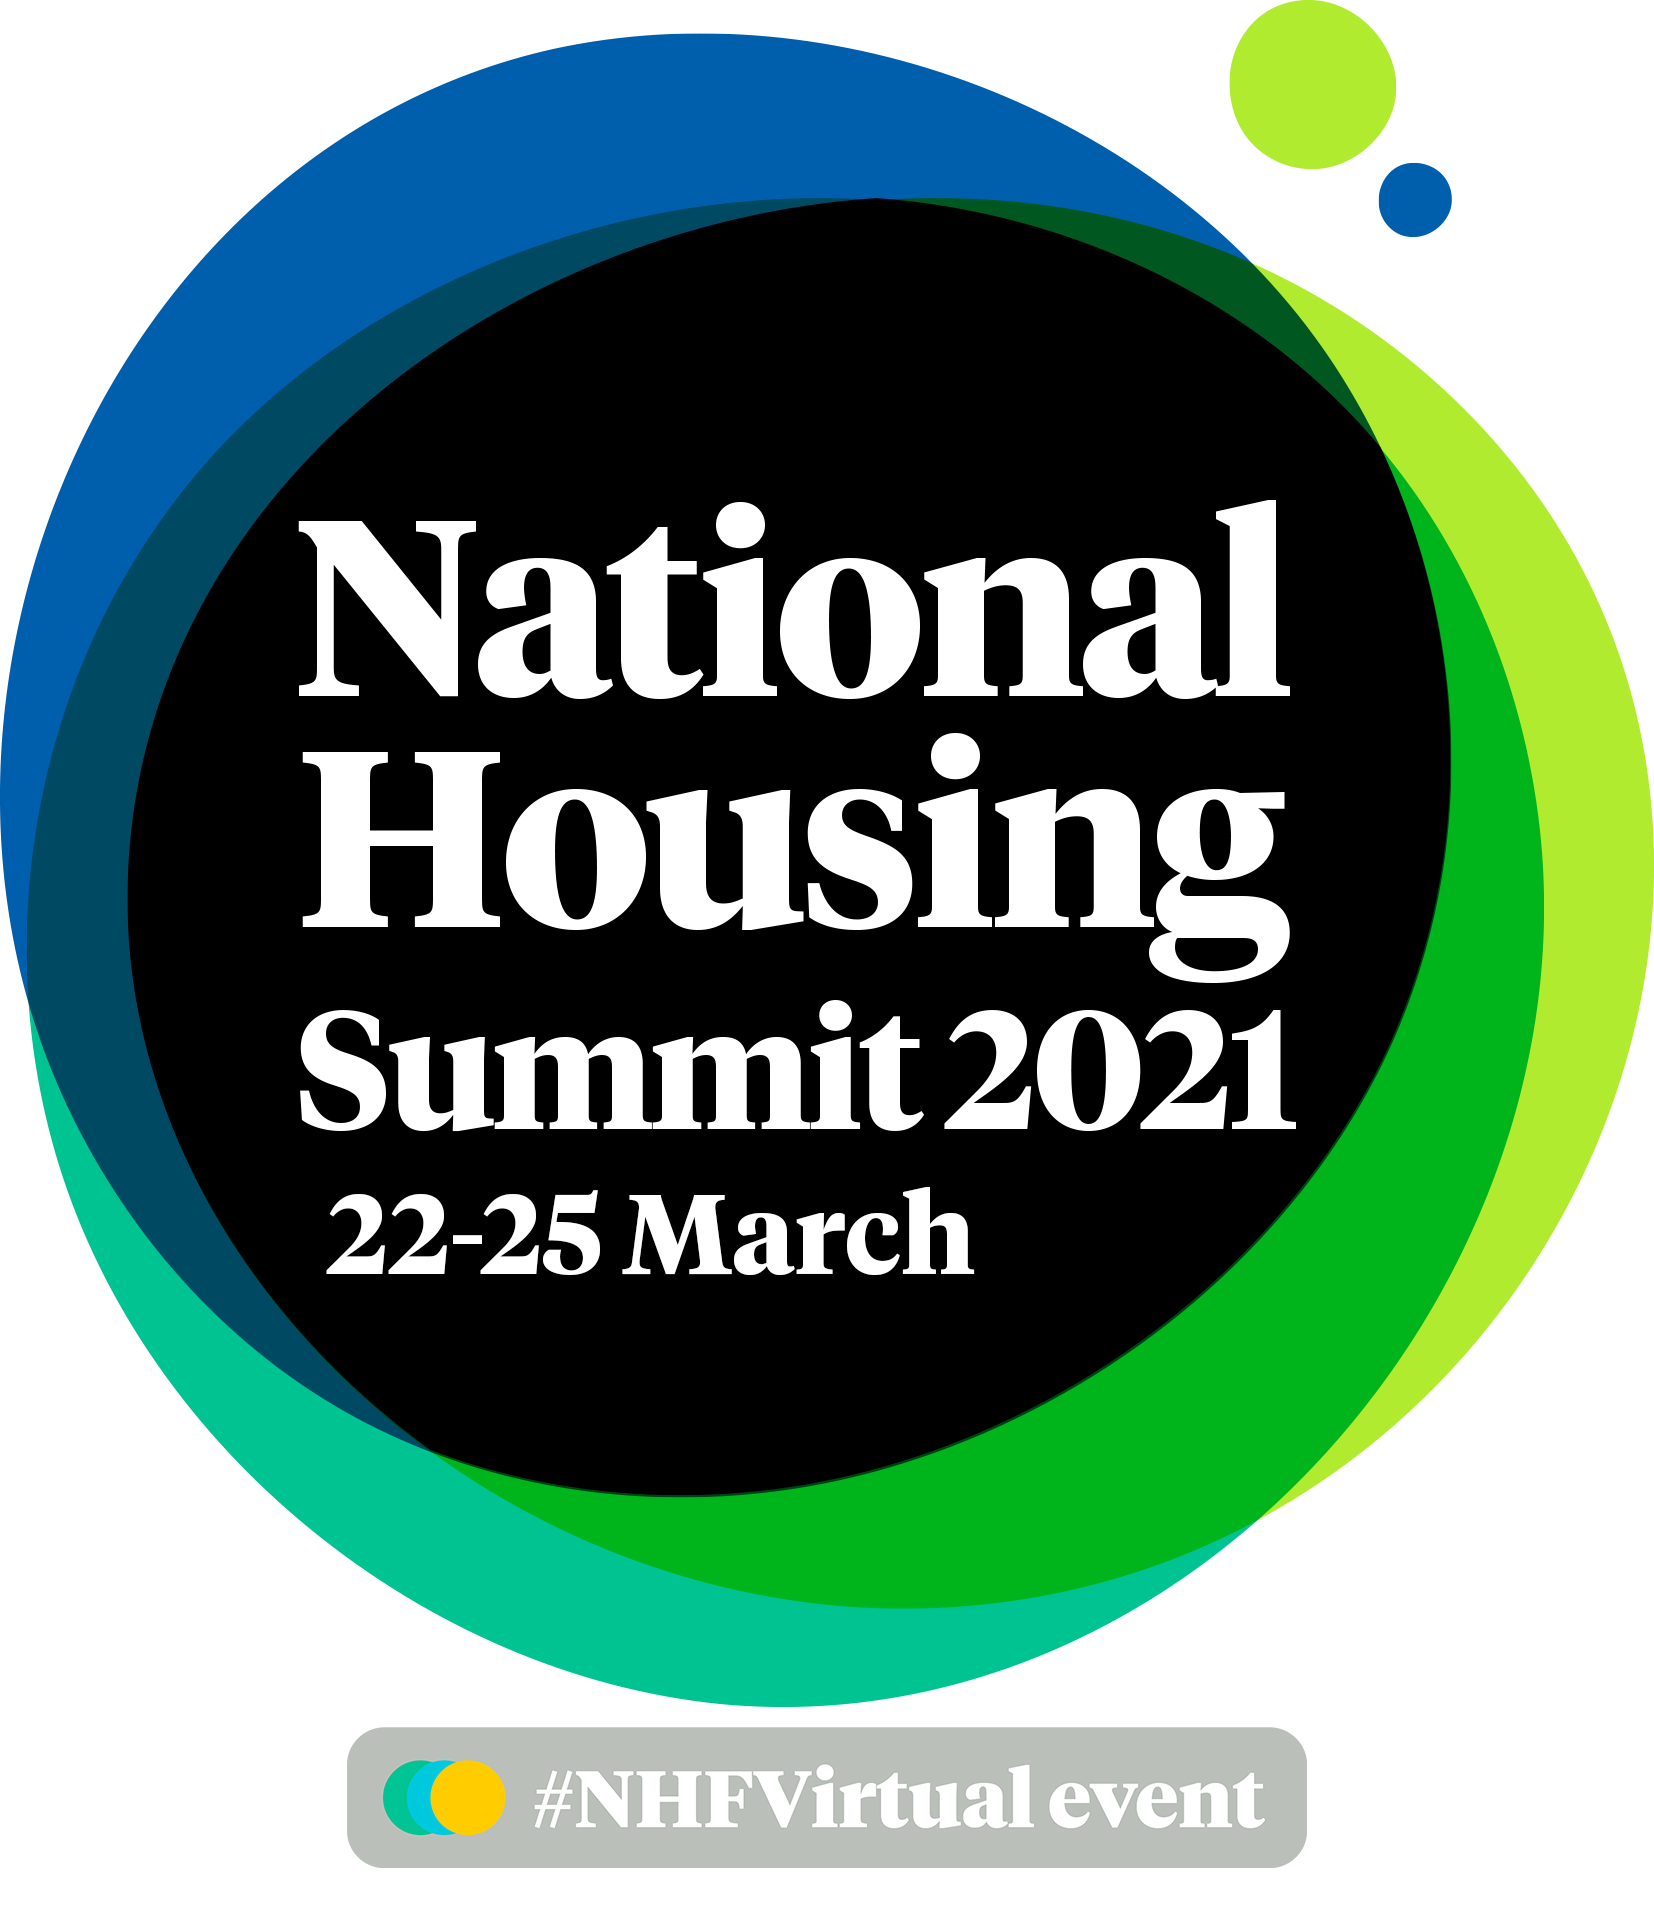 National Housing Summit